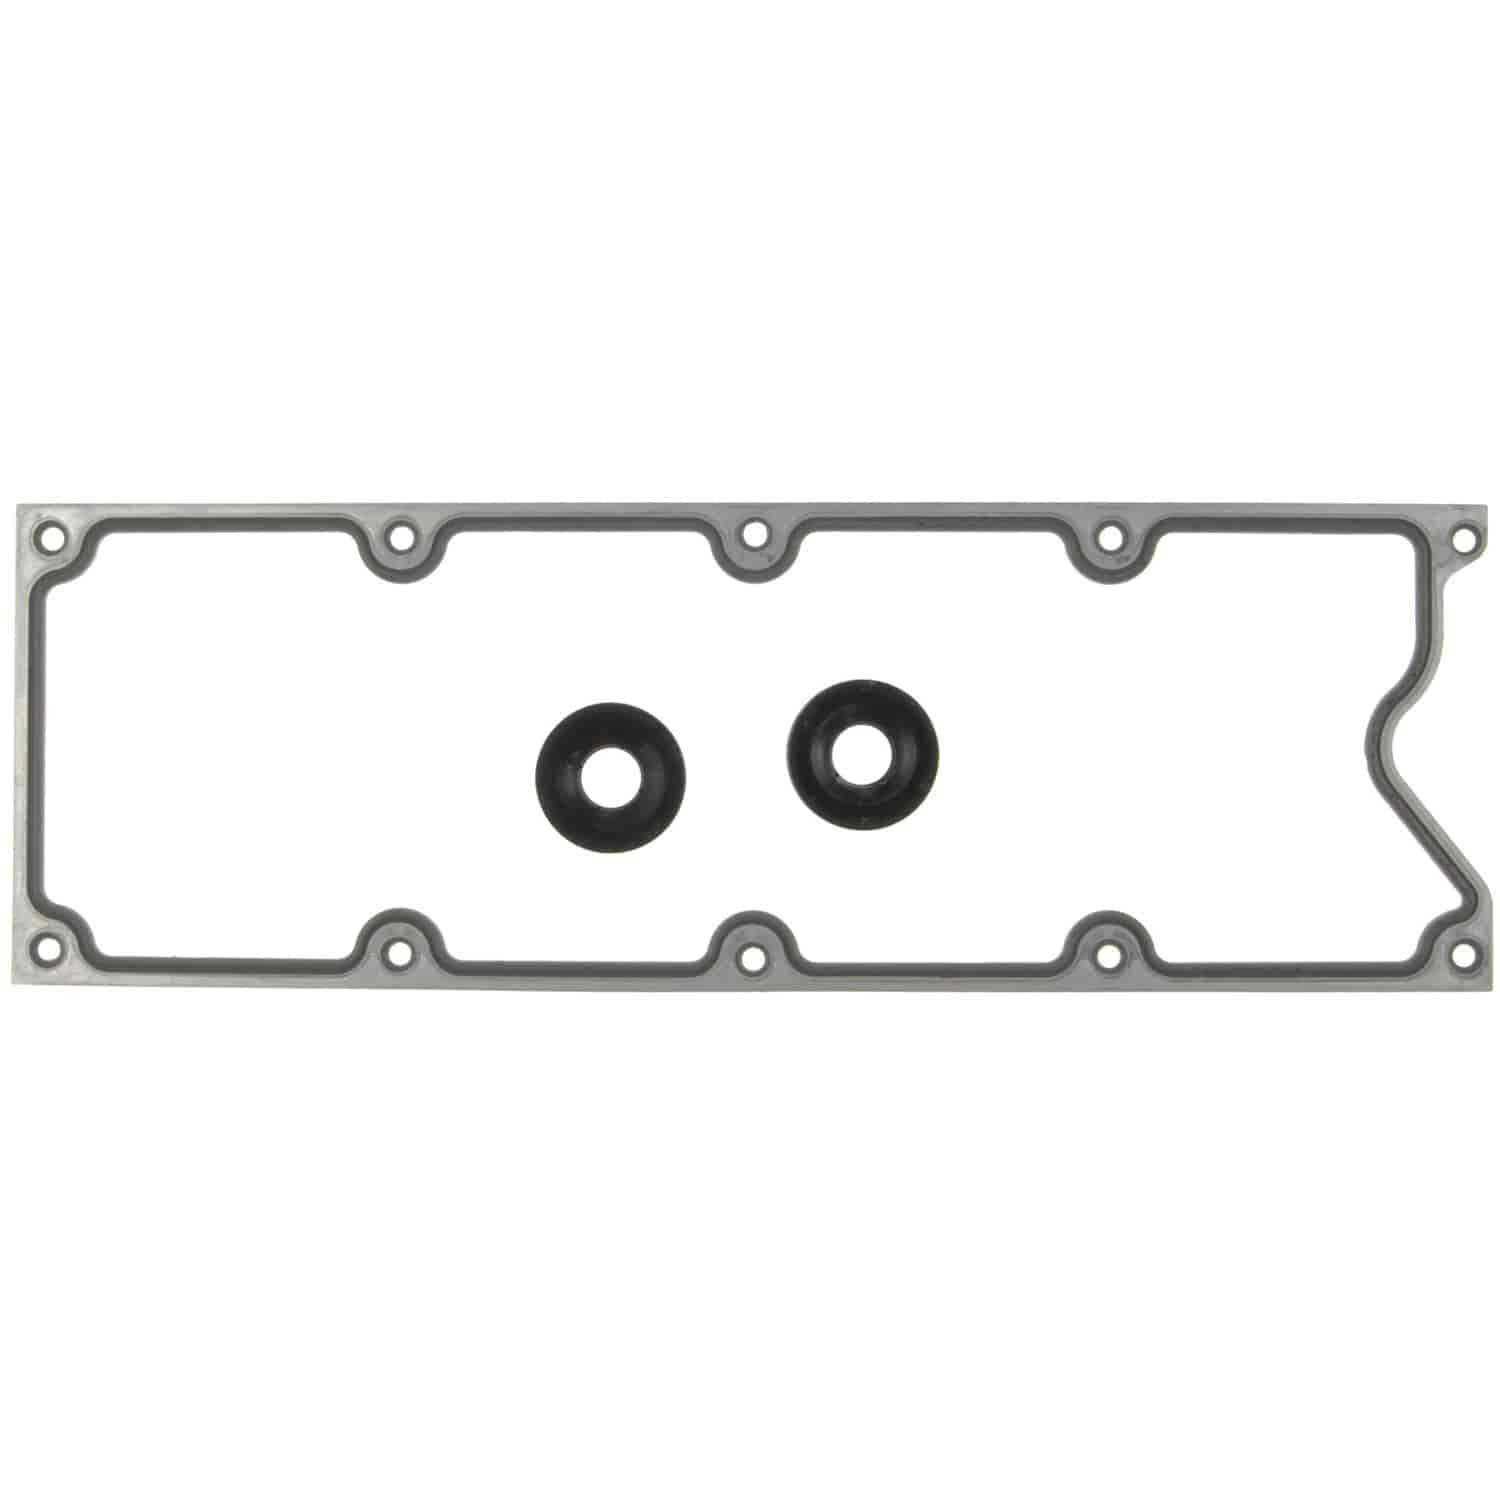 Clevite Mahle Ms Intake Manifold Valley Pan Gasket Chevy Gen Iii Ls V8 4 8 5 3 6